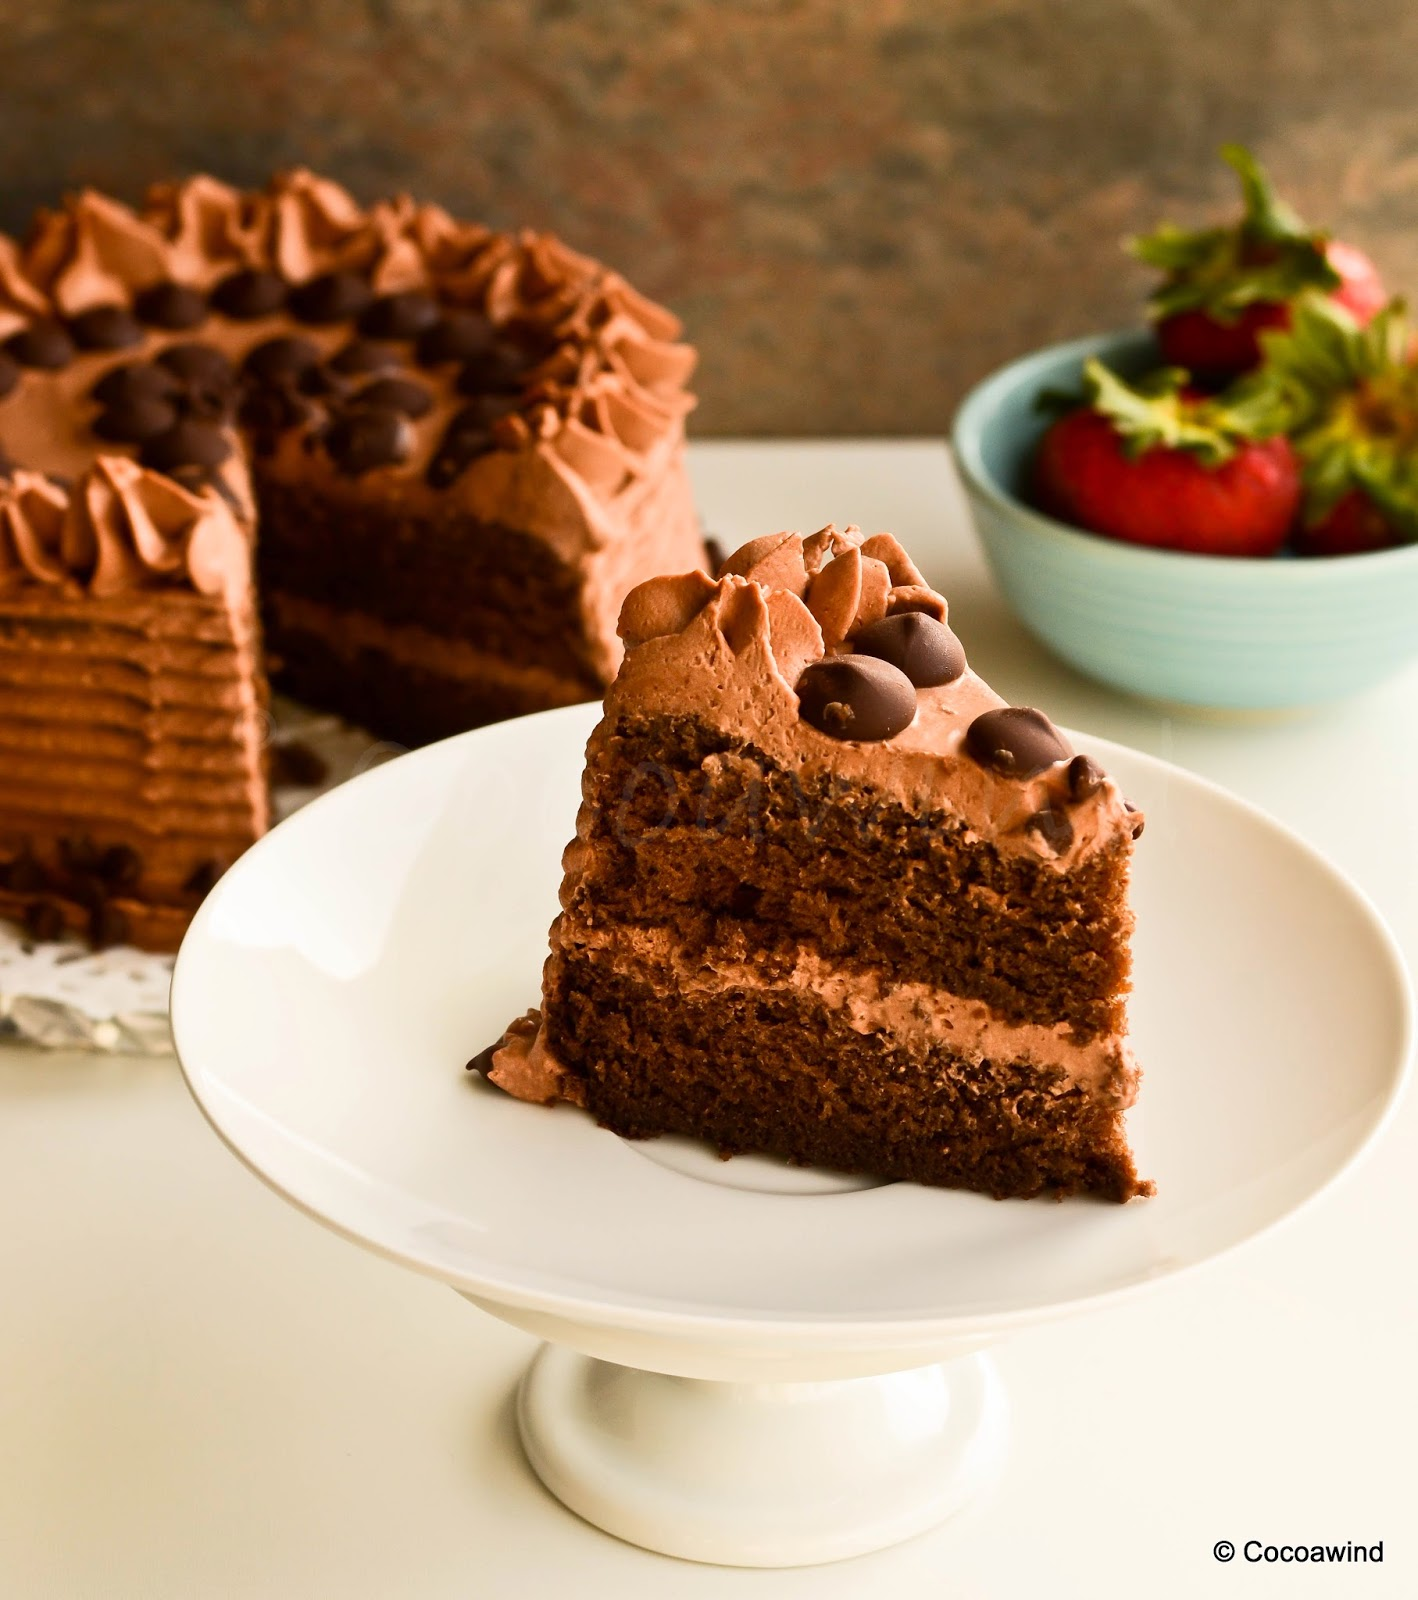 Cake With Chocolate Whipped Cream Frosting : Moist Chocolate Cake with Mocha Whipped Cream Frosting